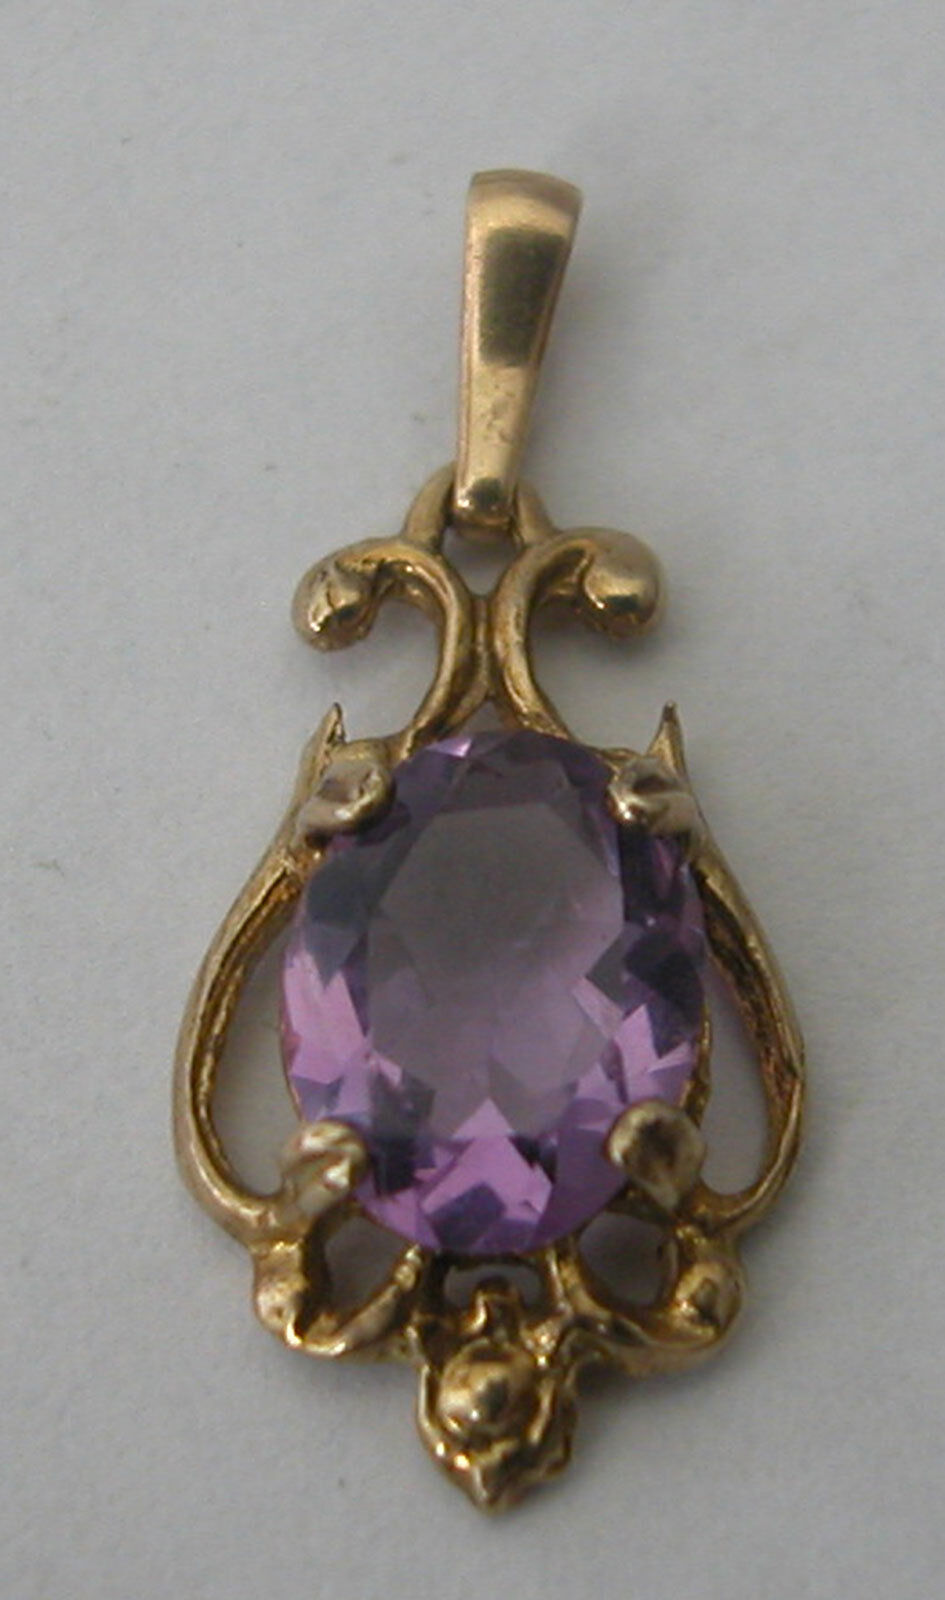 A CUTE 9 K YELLOW gold PENDANT SET WITH AN OVAL FACETED AMETHYST OF 1 CARAT